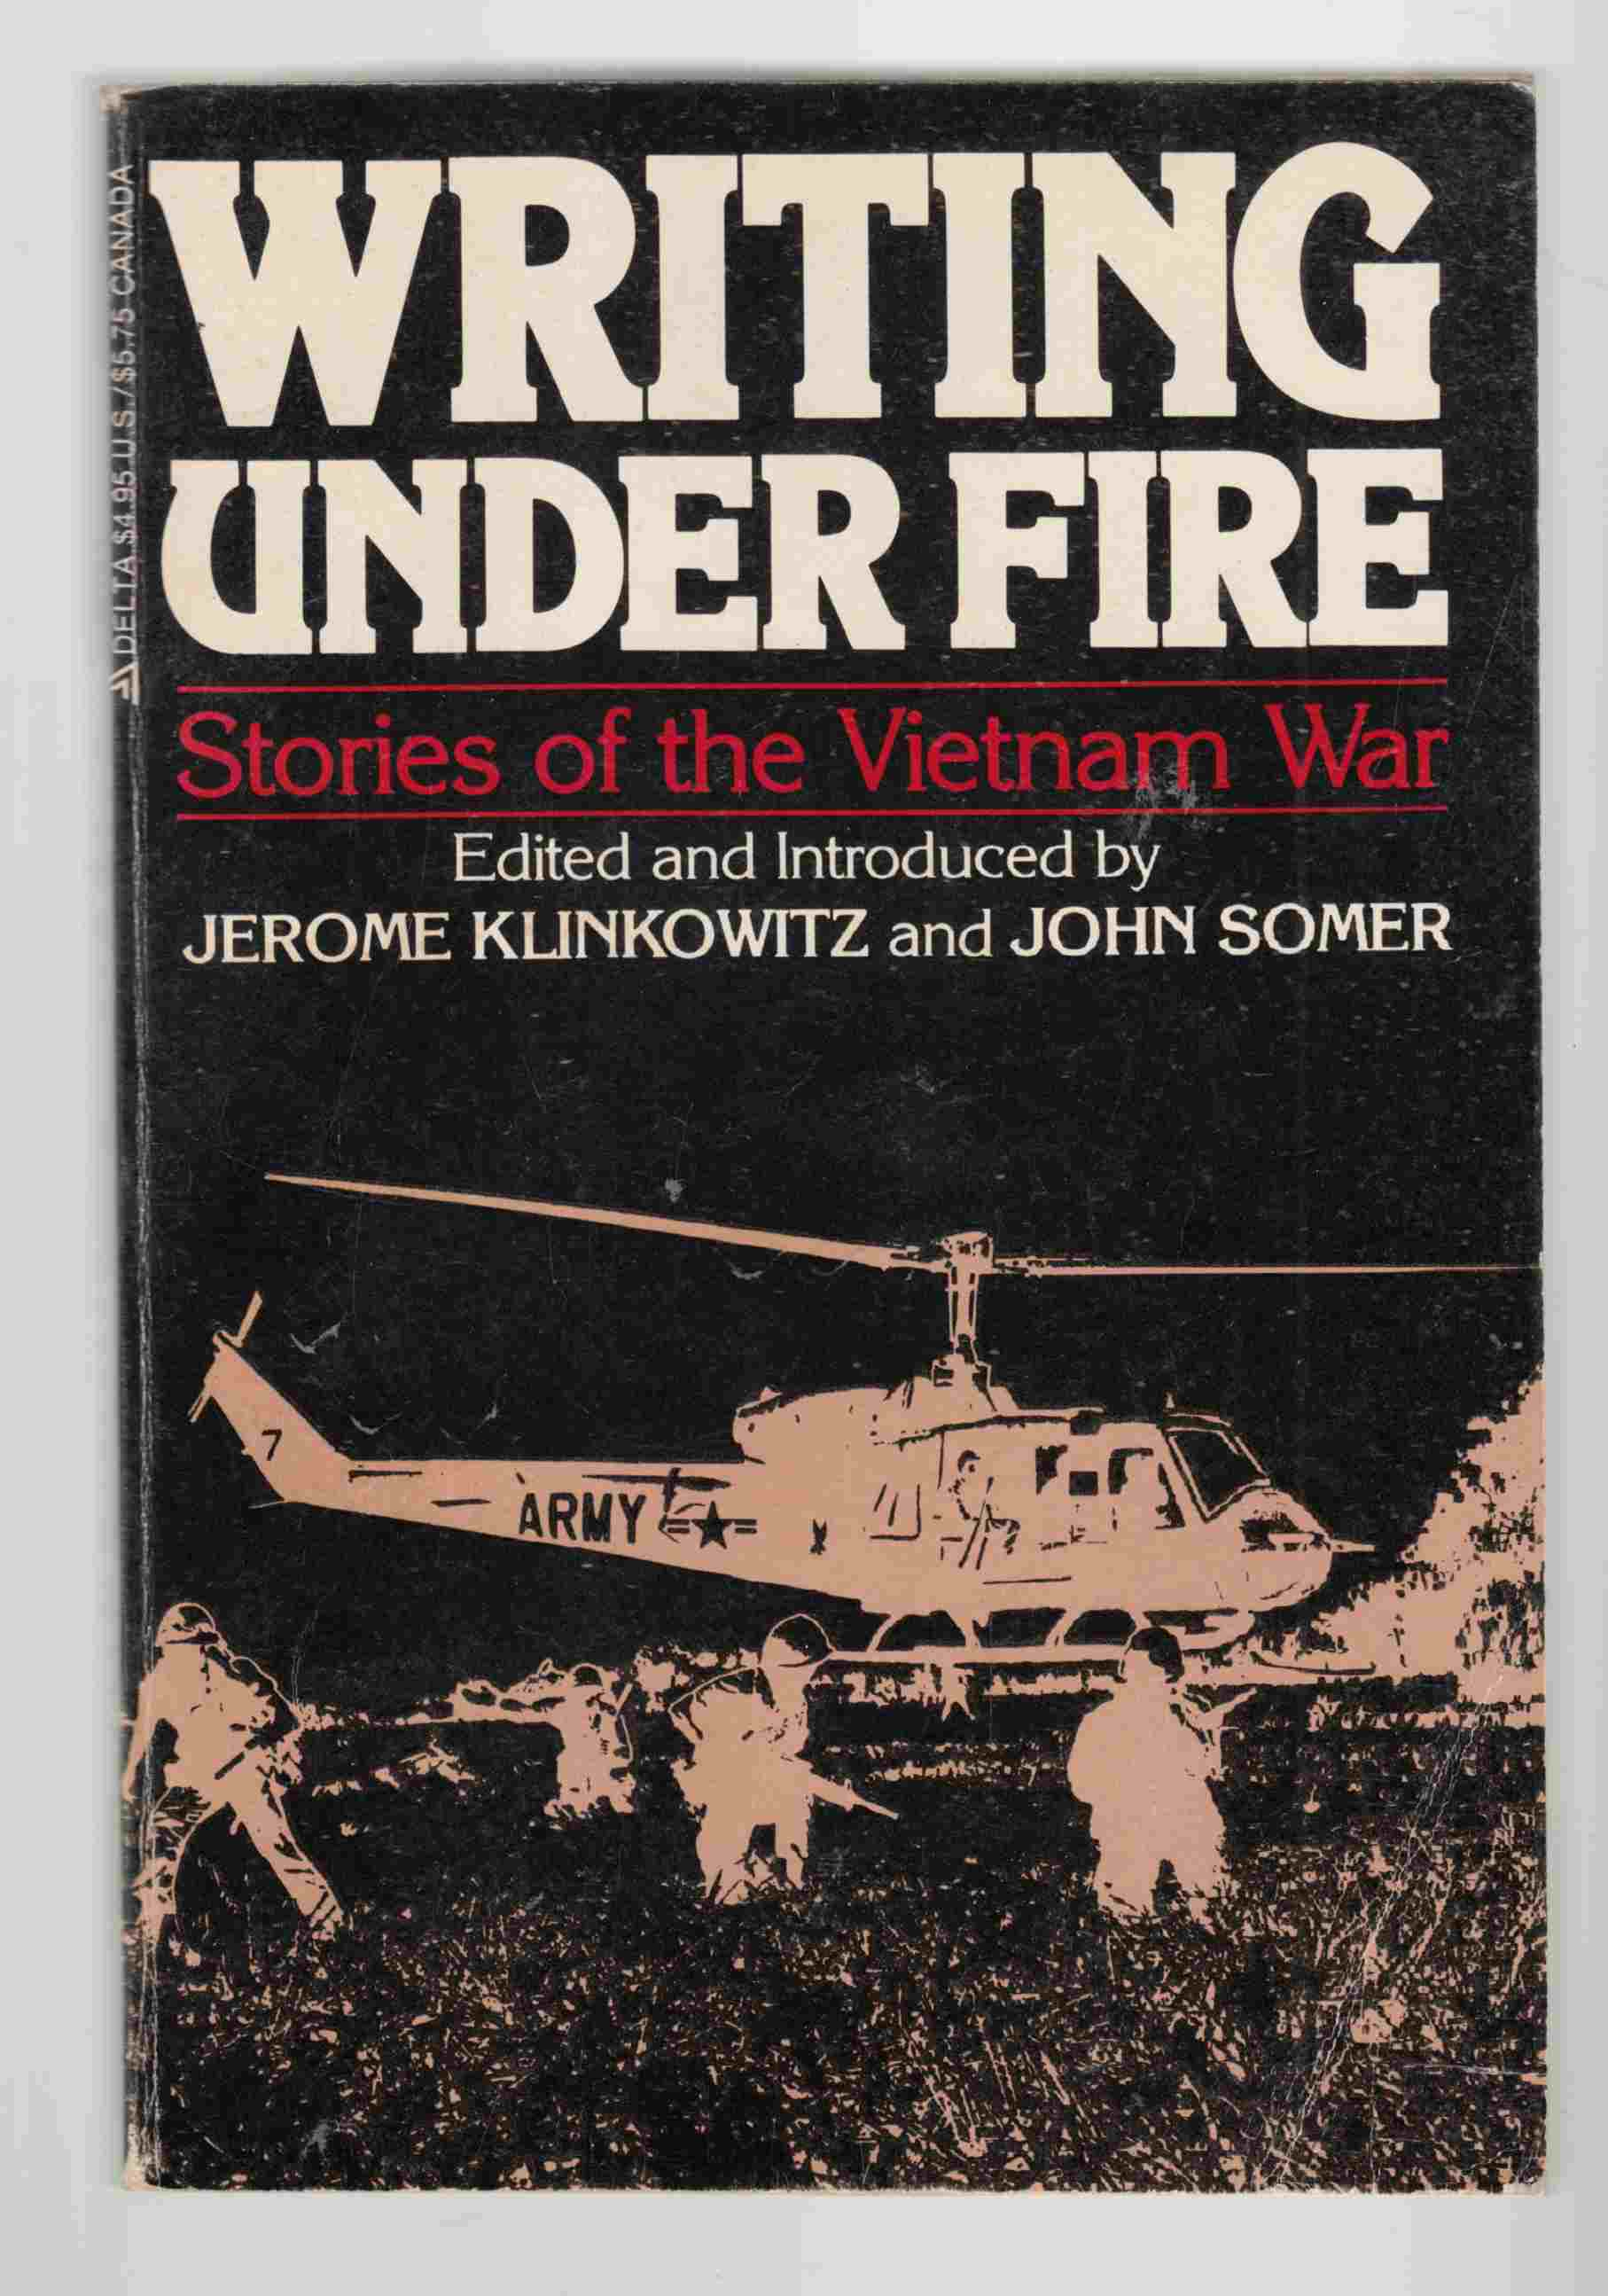 Image for Writing under Fire Stories of the Vietnam War